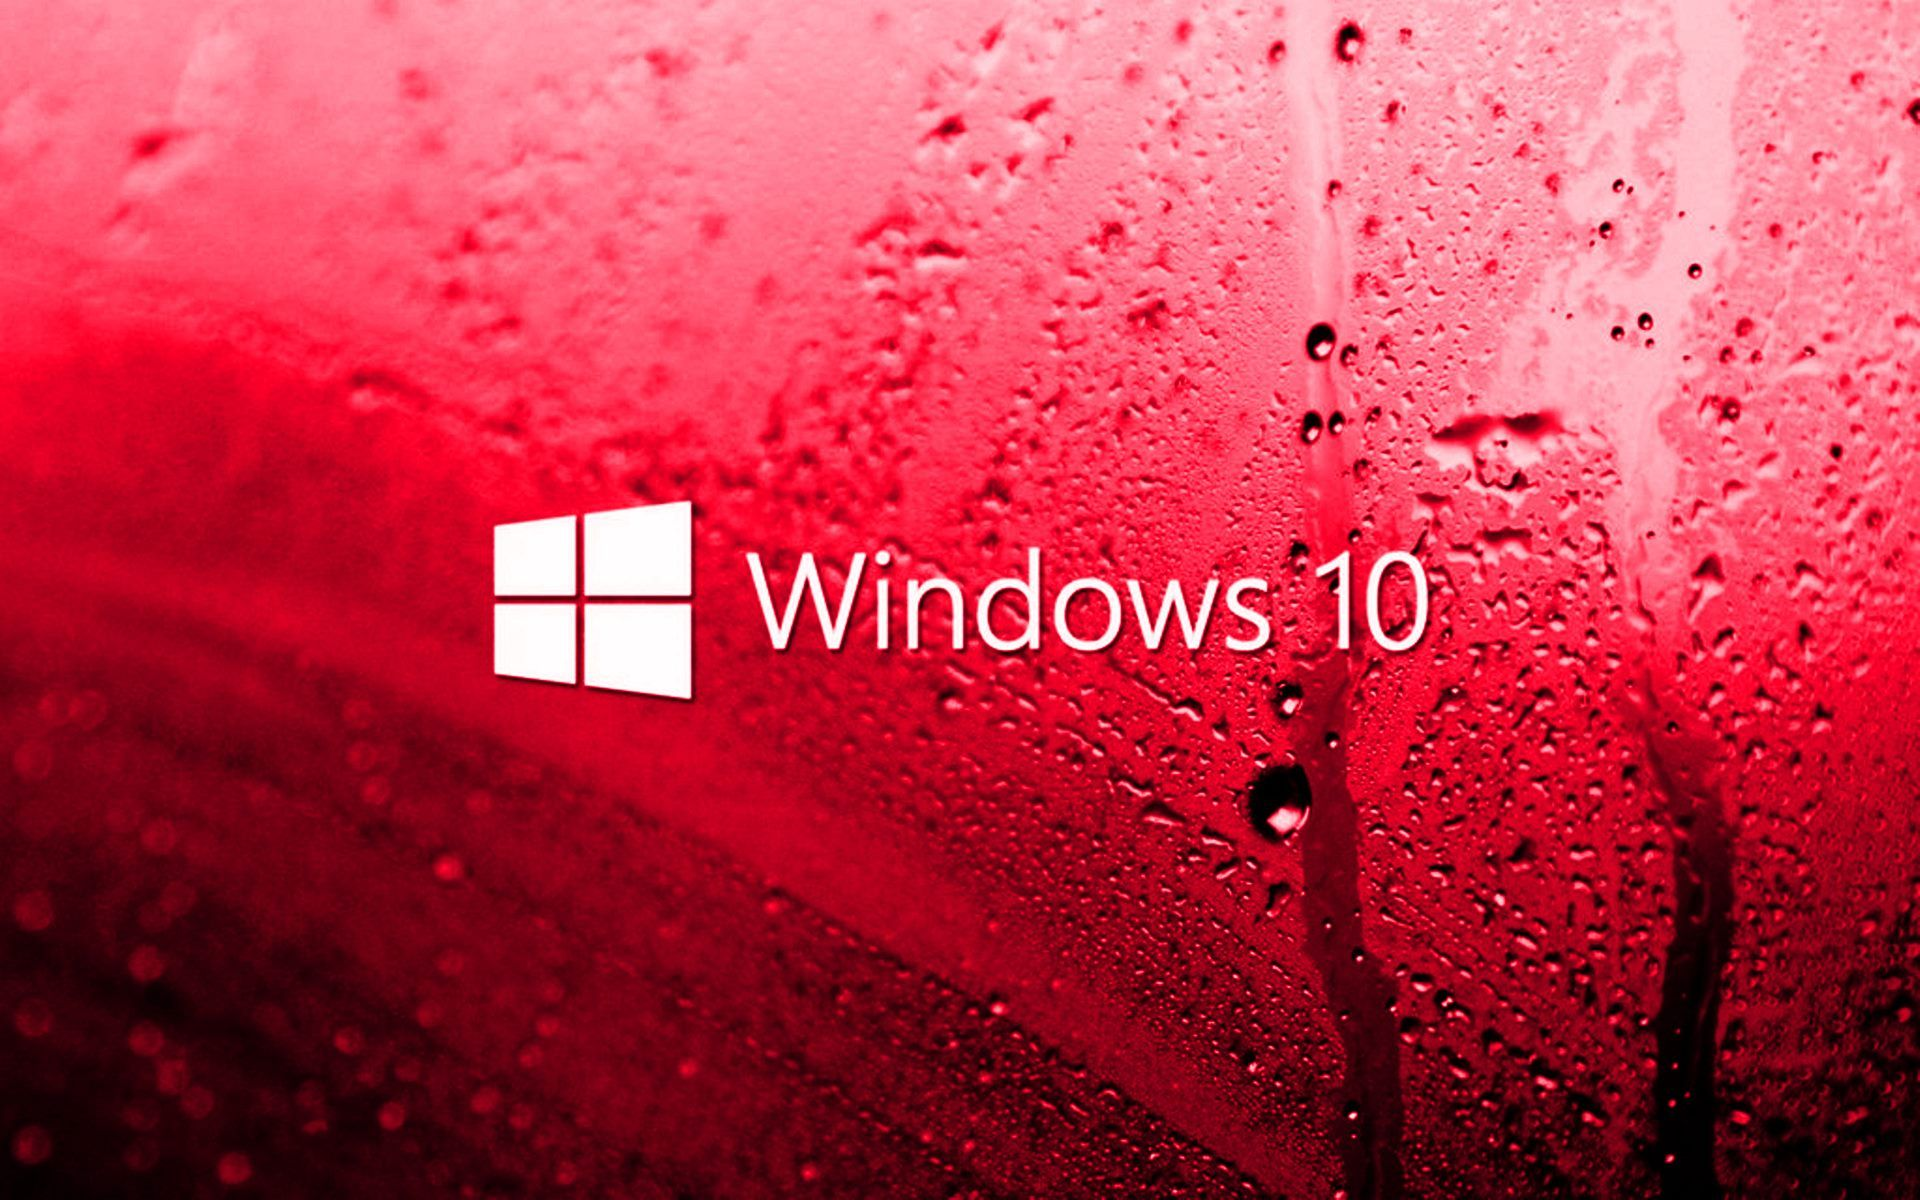 Windows 10 Hd Wallpaper 15 Hd Wallpapers For Laptop